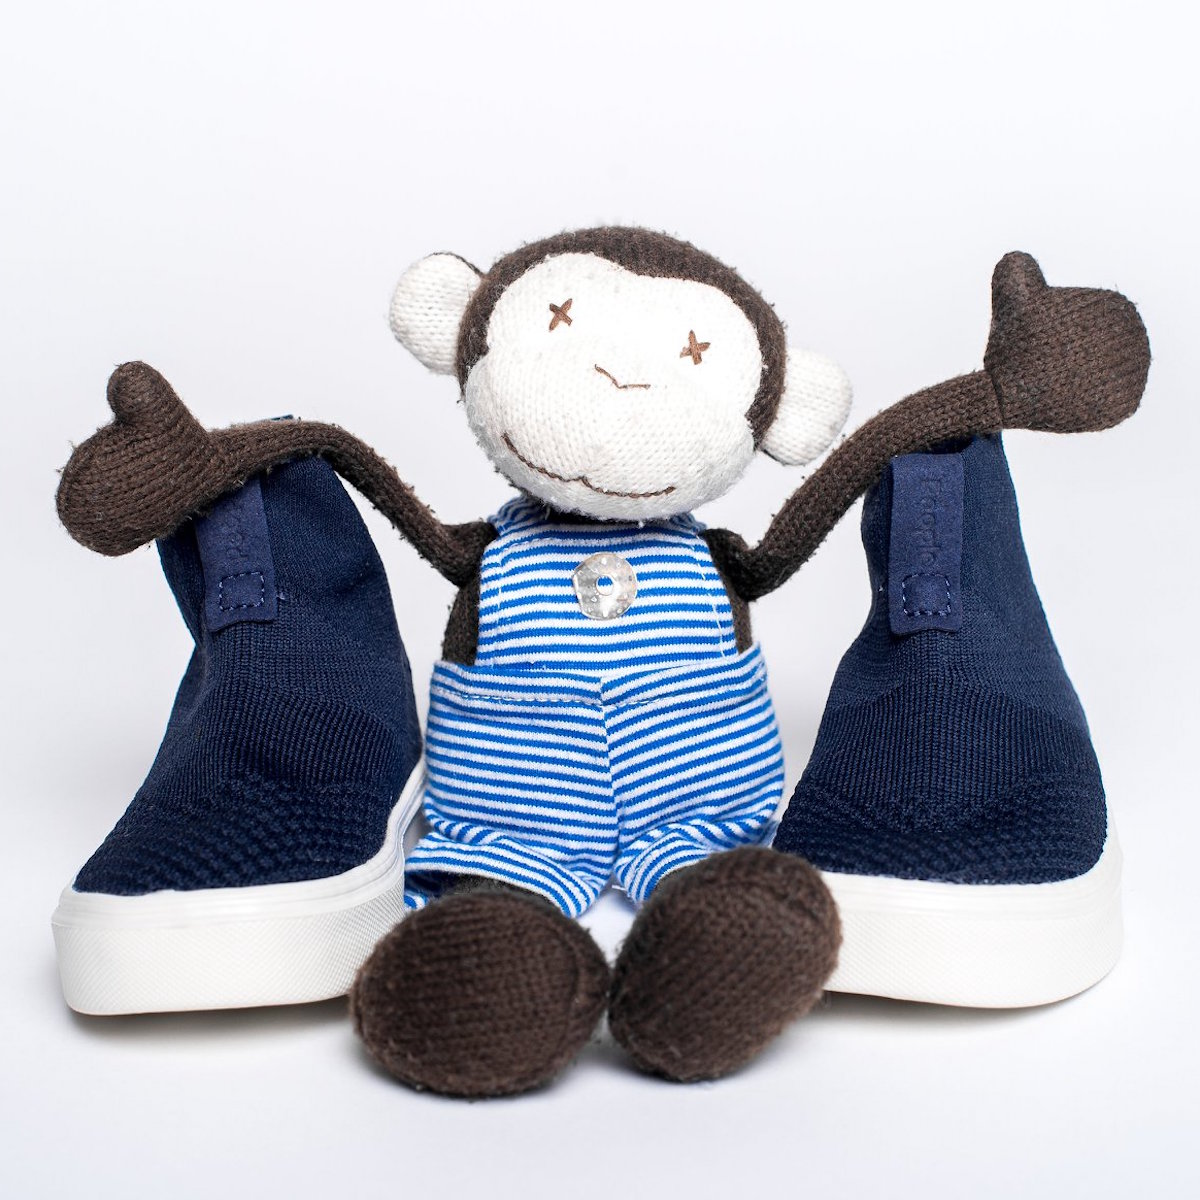 People Footwear Blue Shoes and Monkey